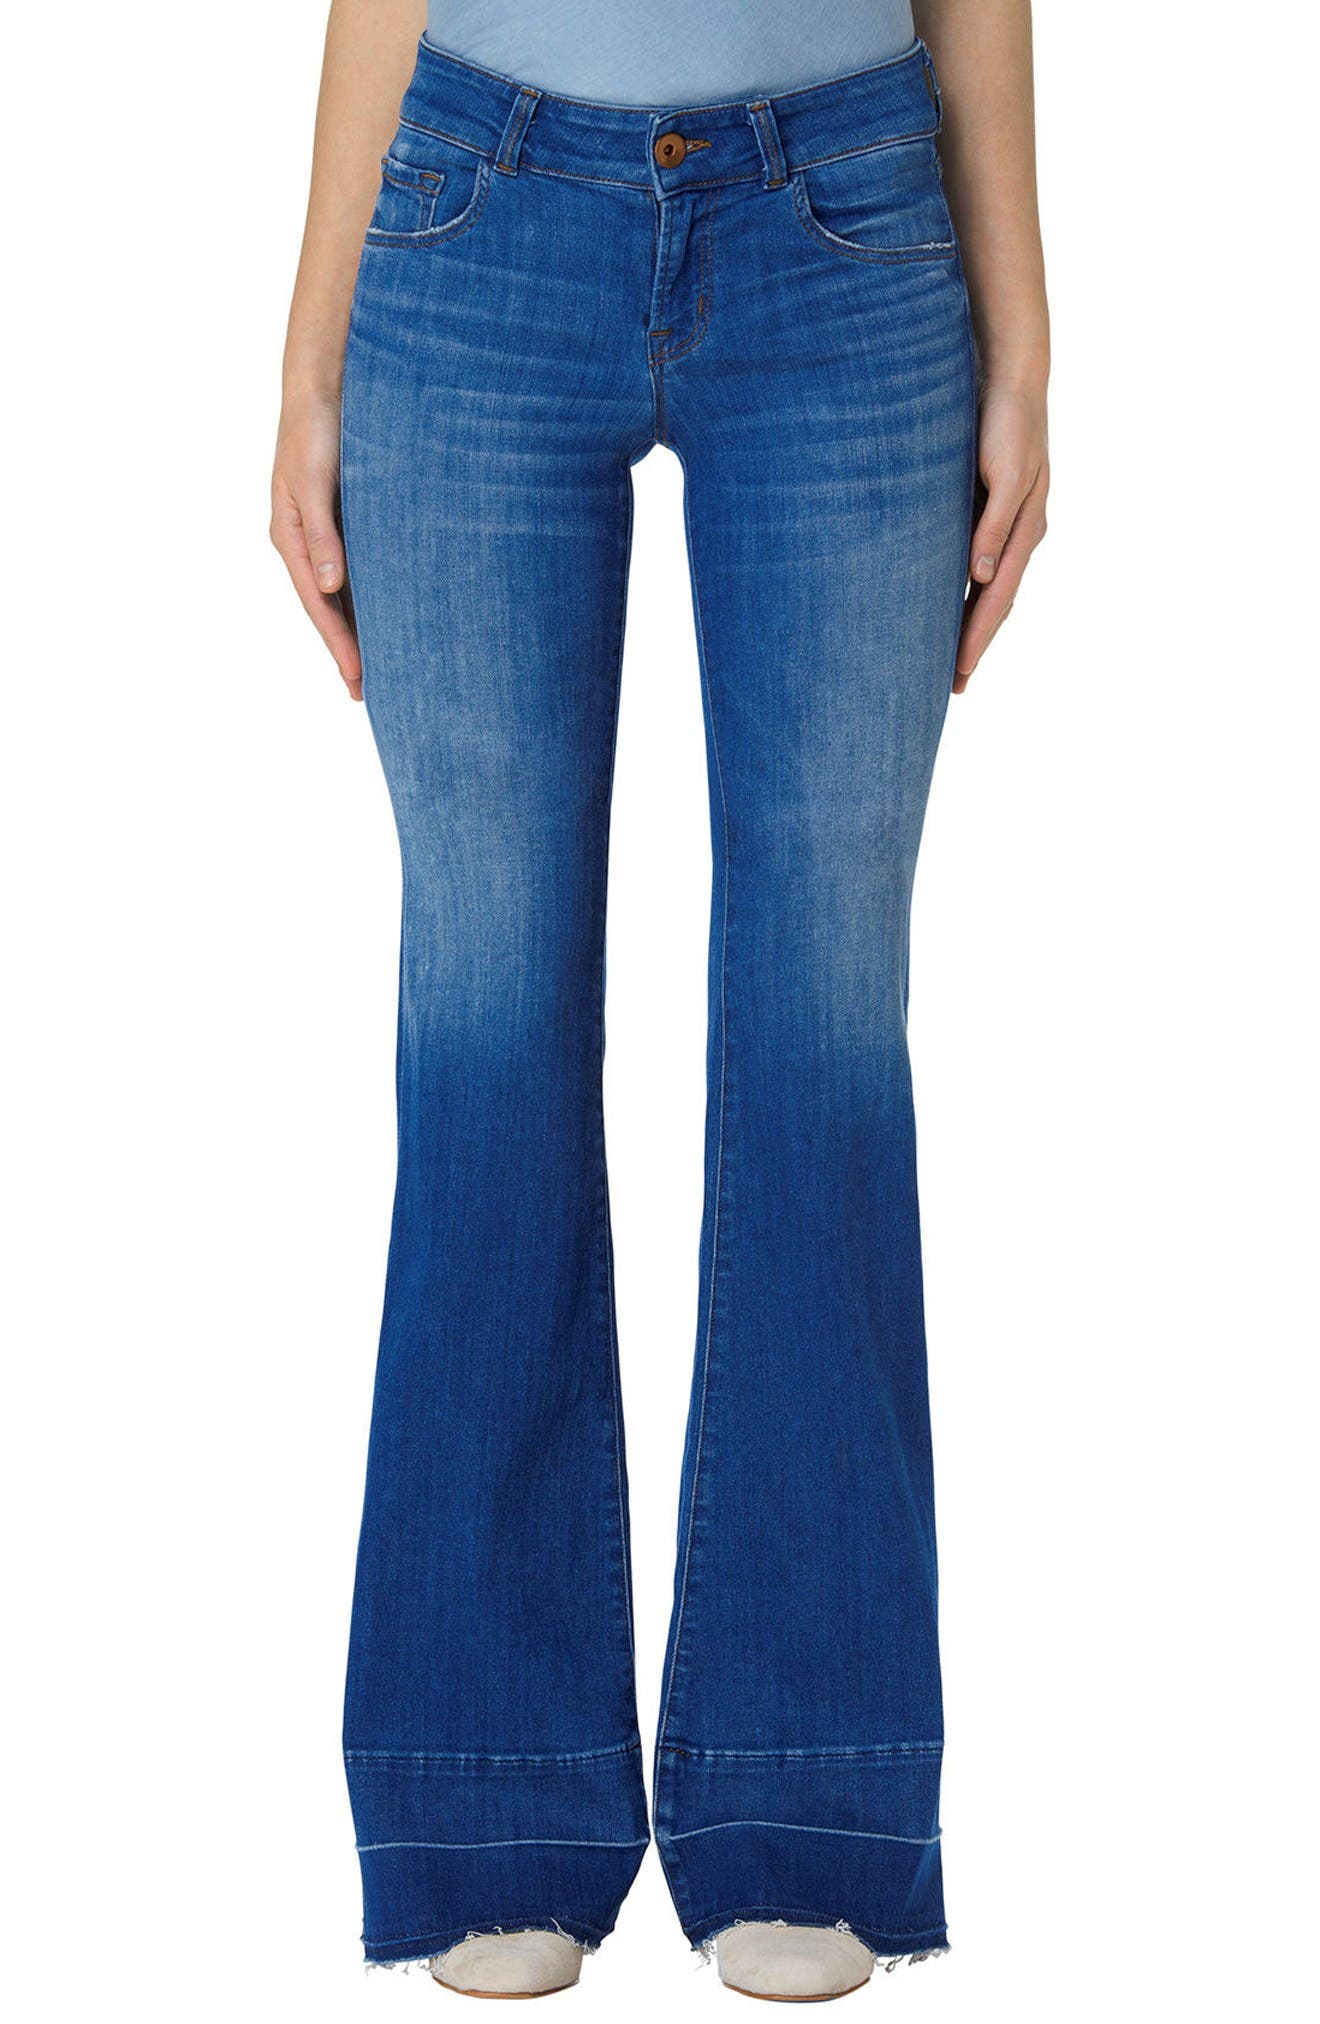 Main Image - J Brand Love Story Flare Jeans (Angelic)